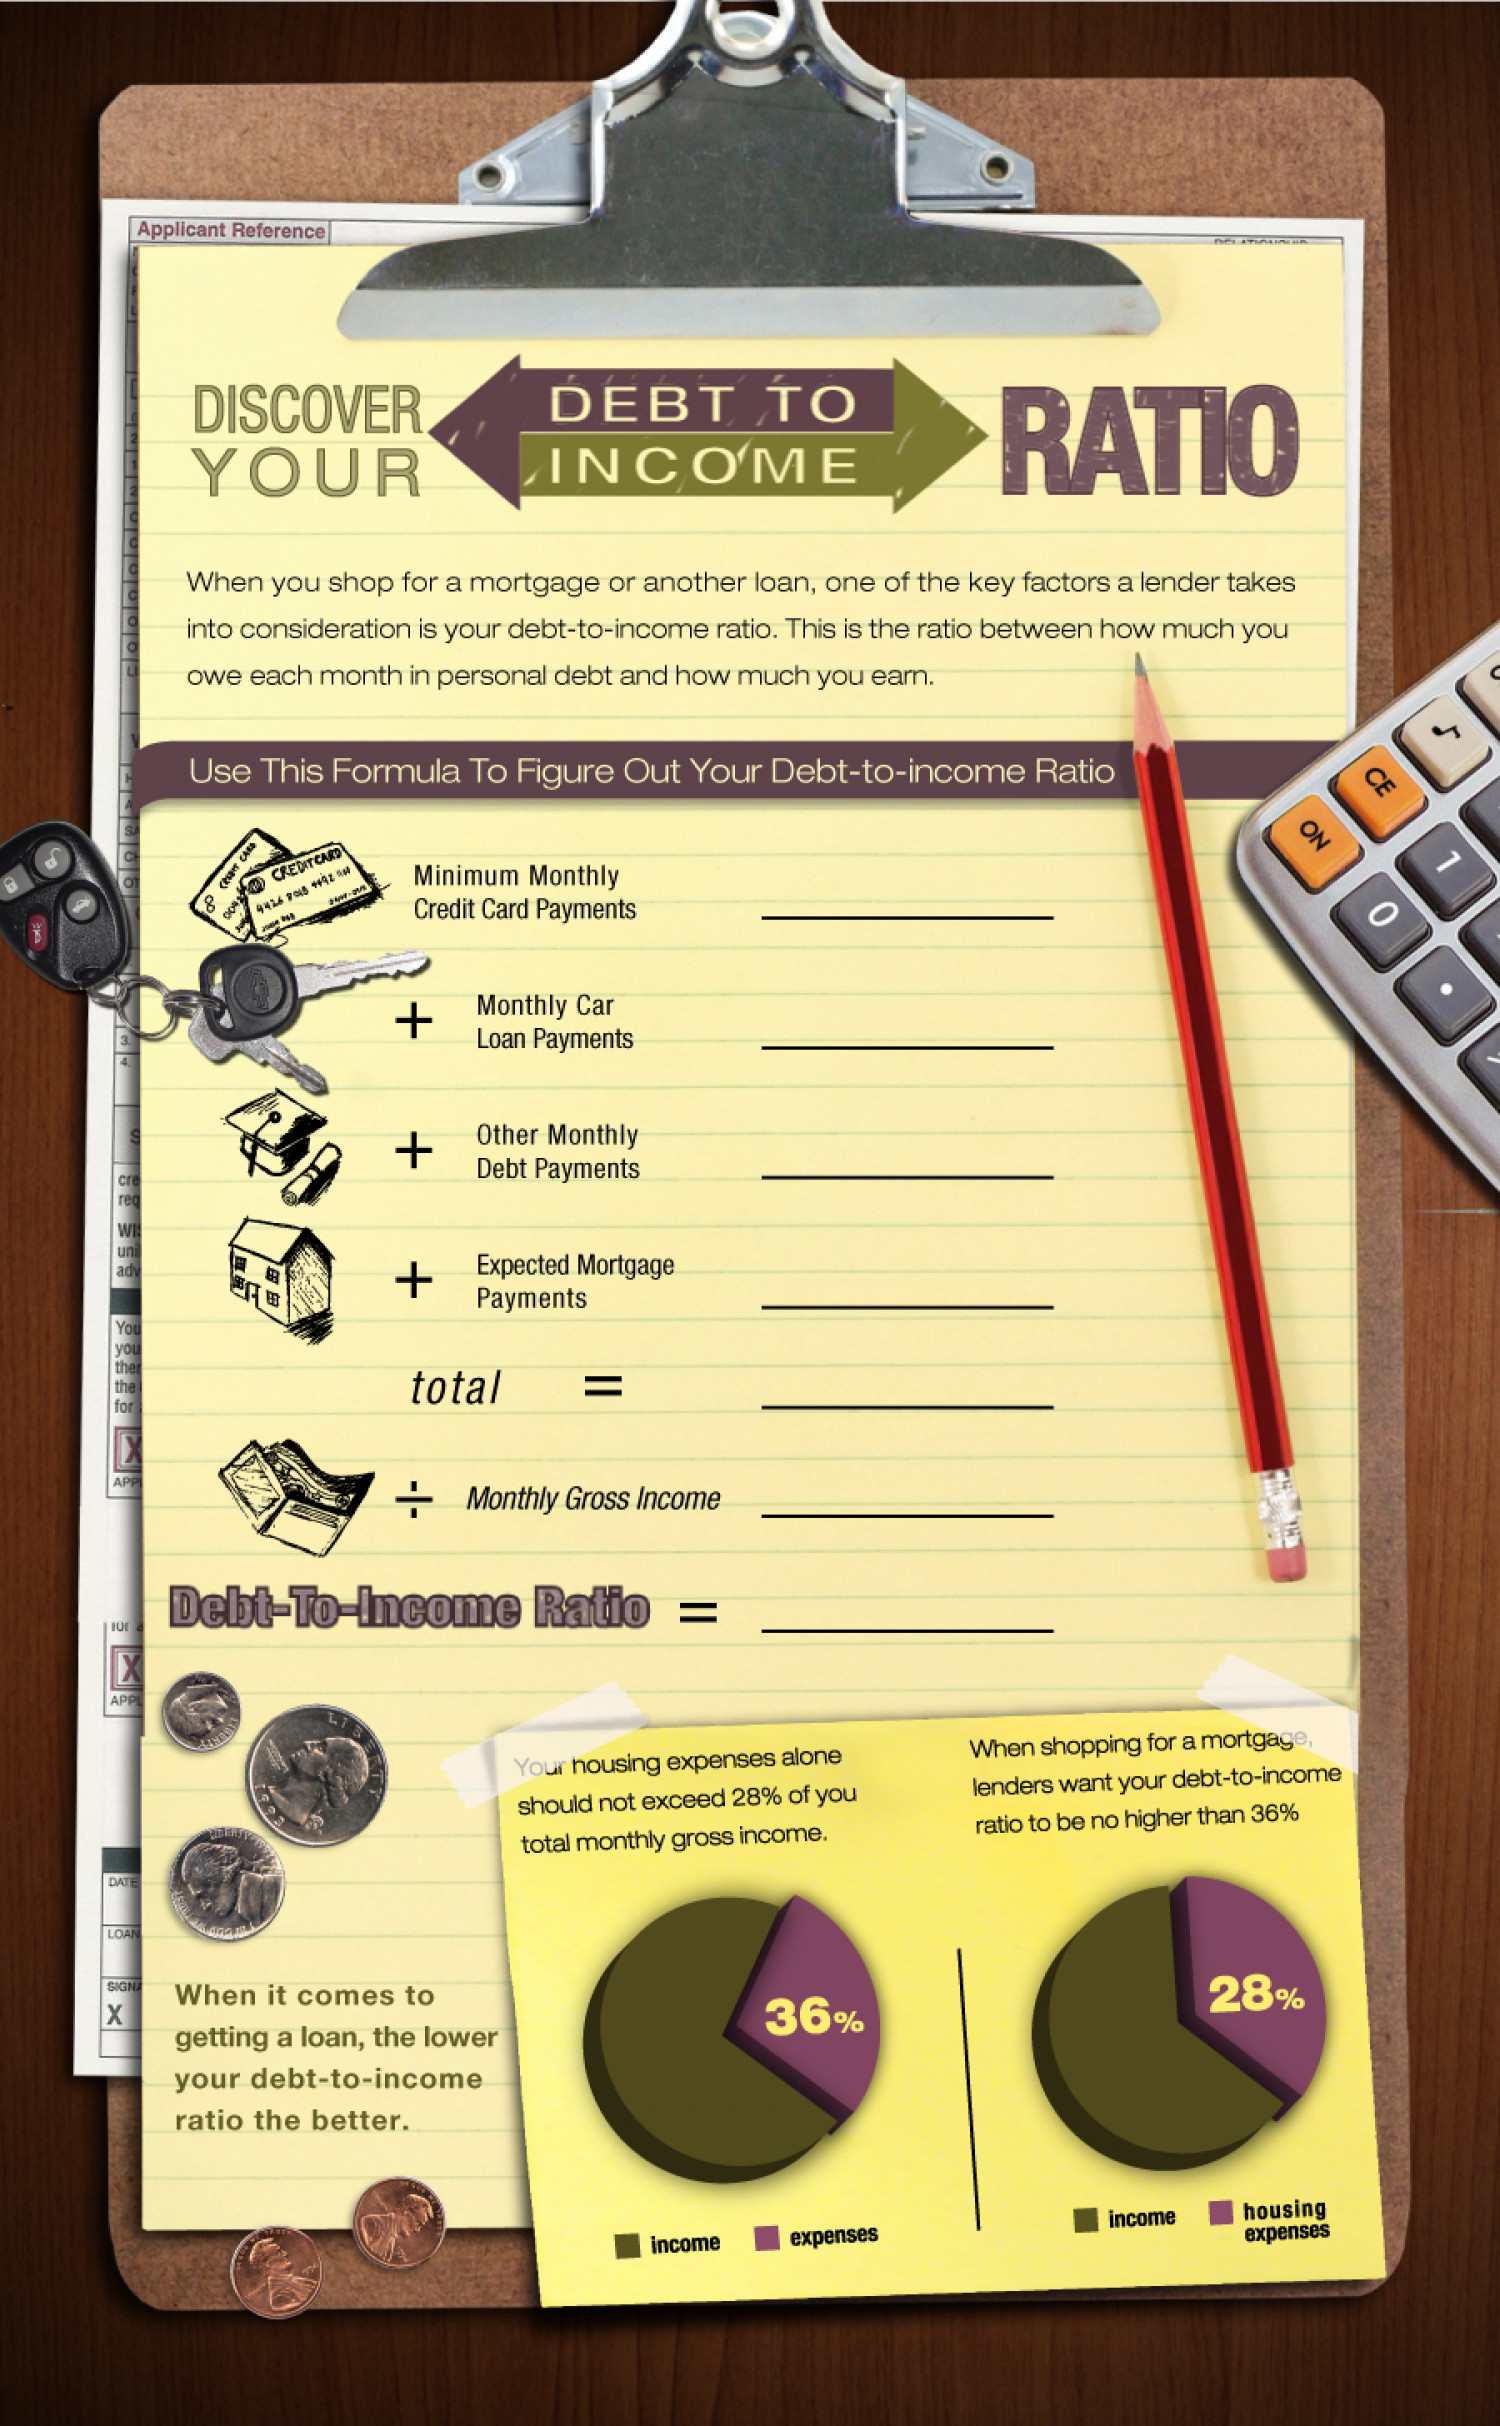 Discover Your Debt To Income Ratio